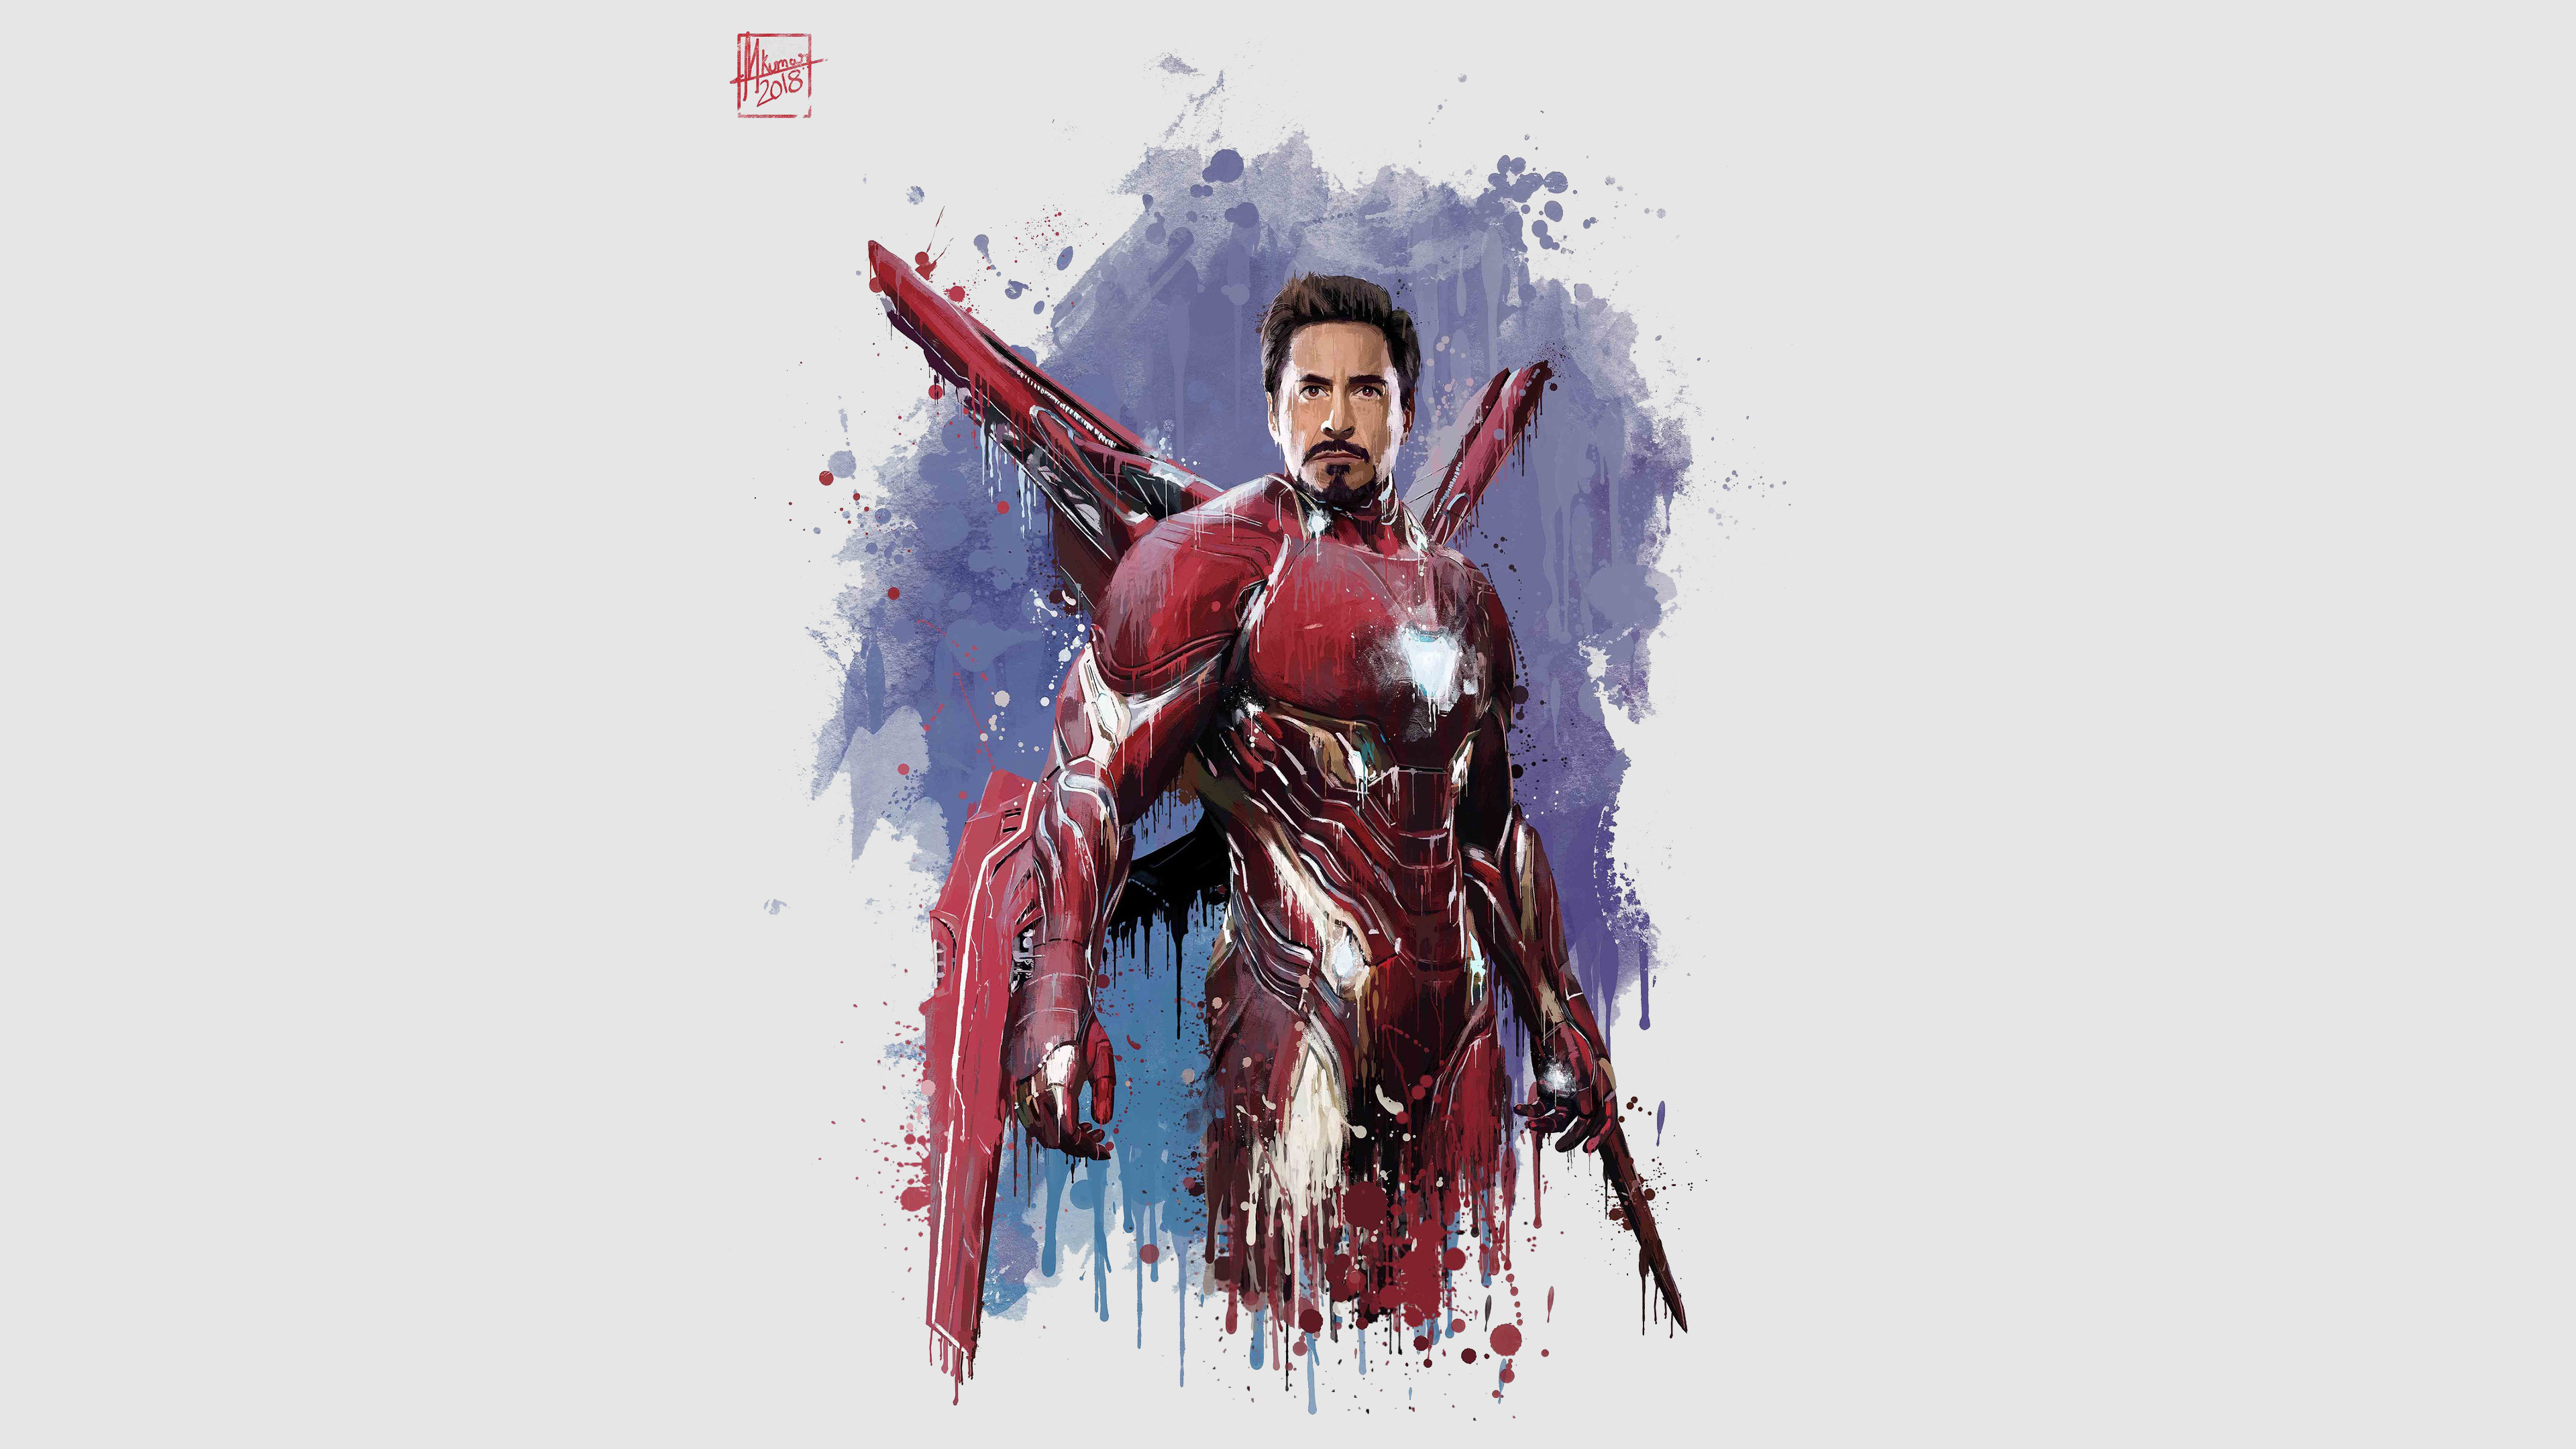 Cute Flowers Full Hd Wallpapers Download 3840x2160 Wallpaper Iron Man New Suit Avengers